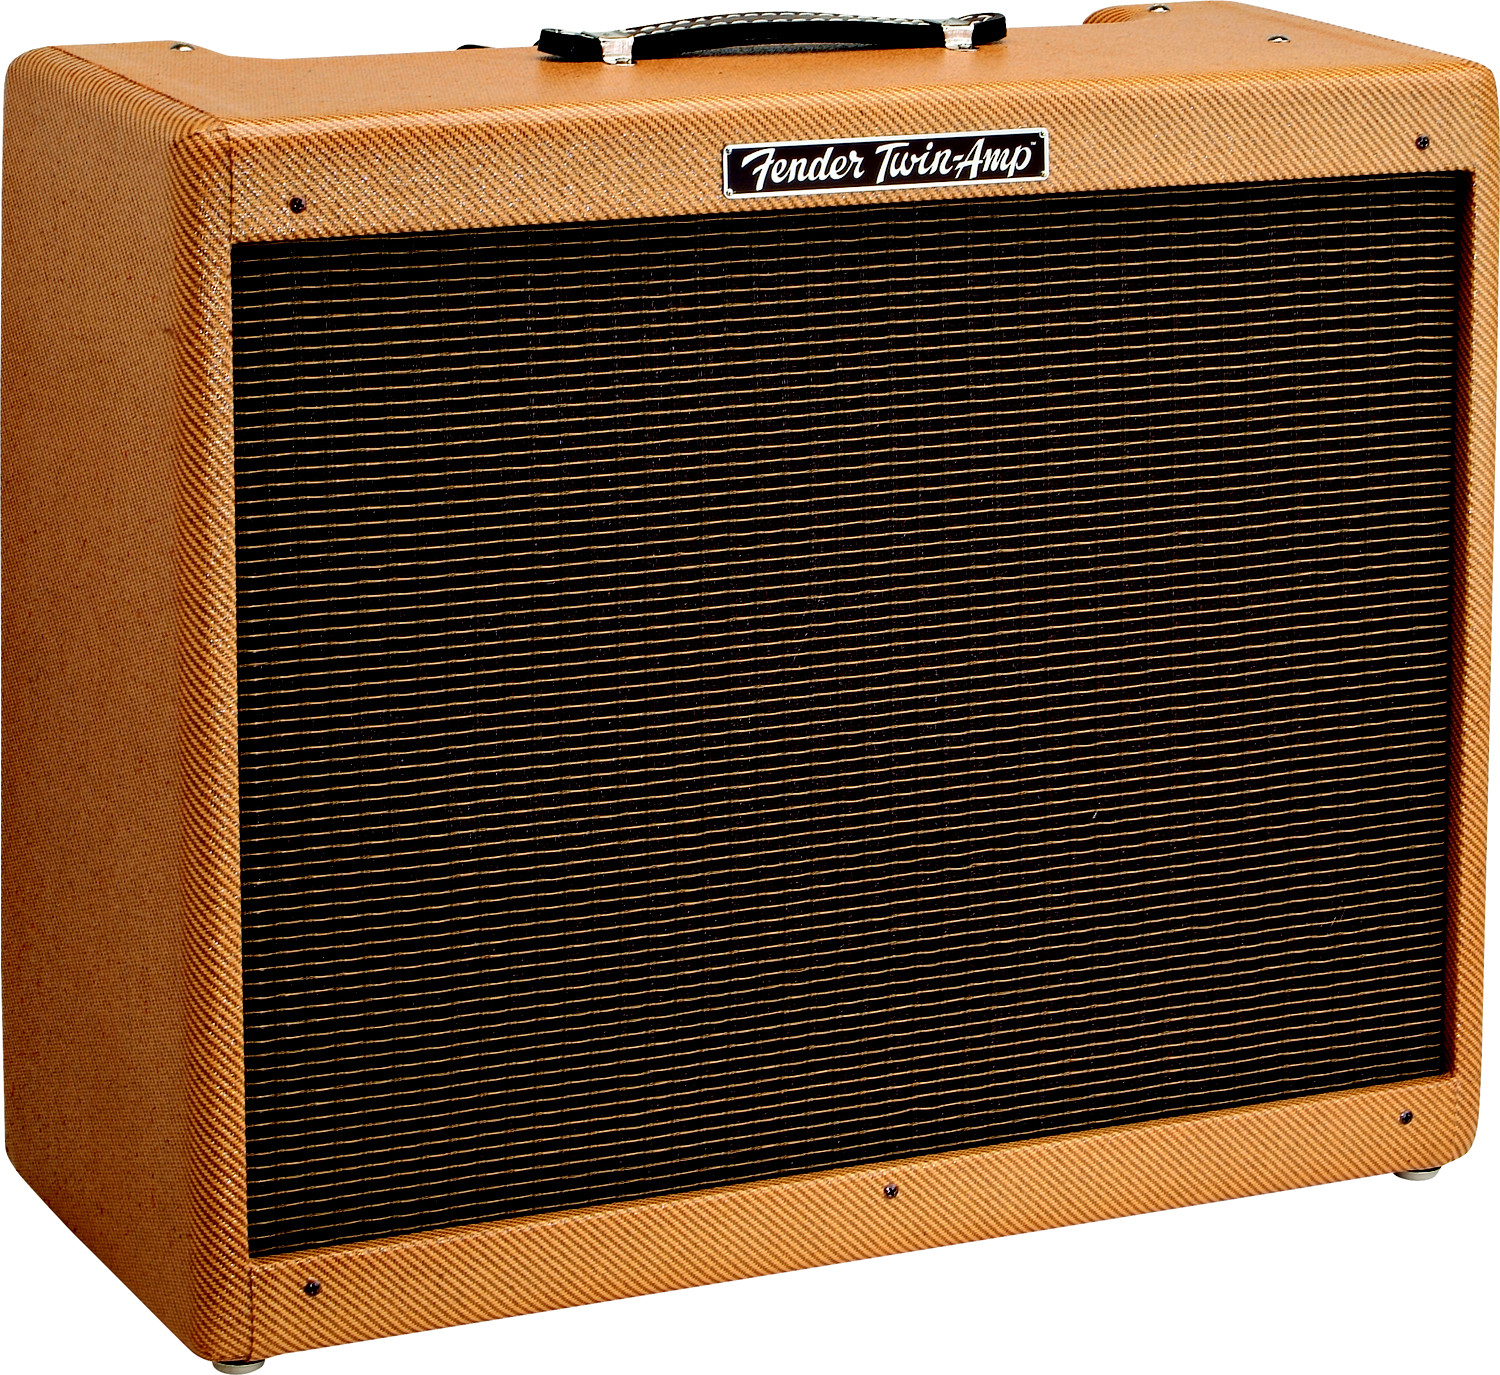 Fender '57 Twin-Amp : Anonymous 's user review